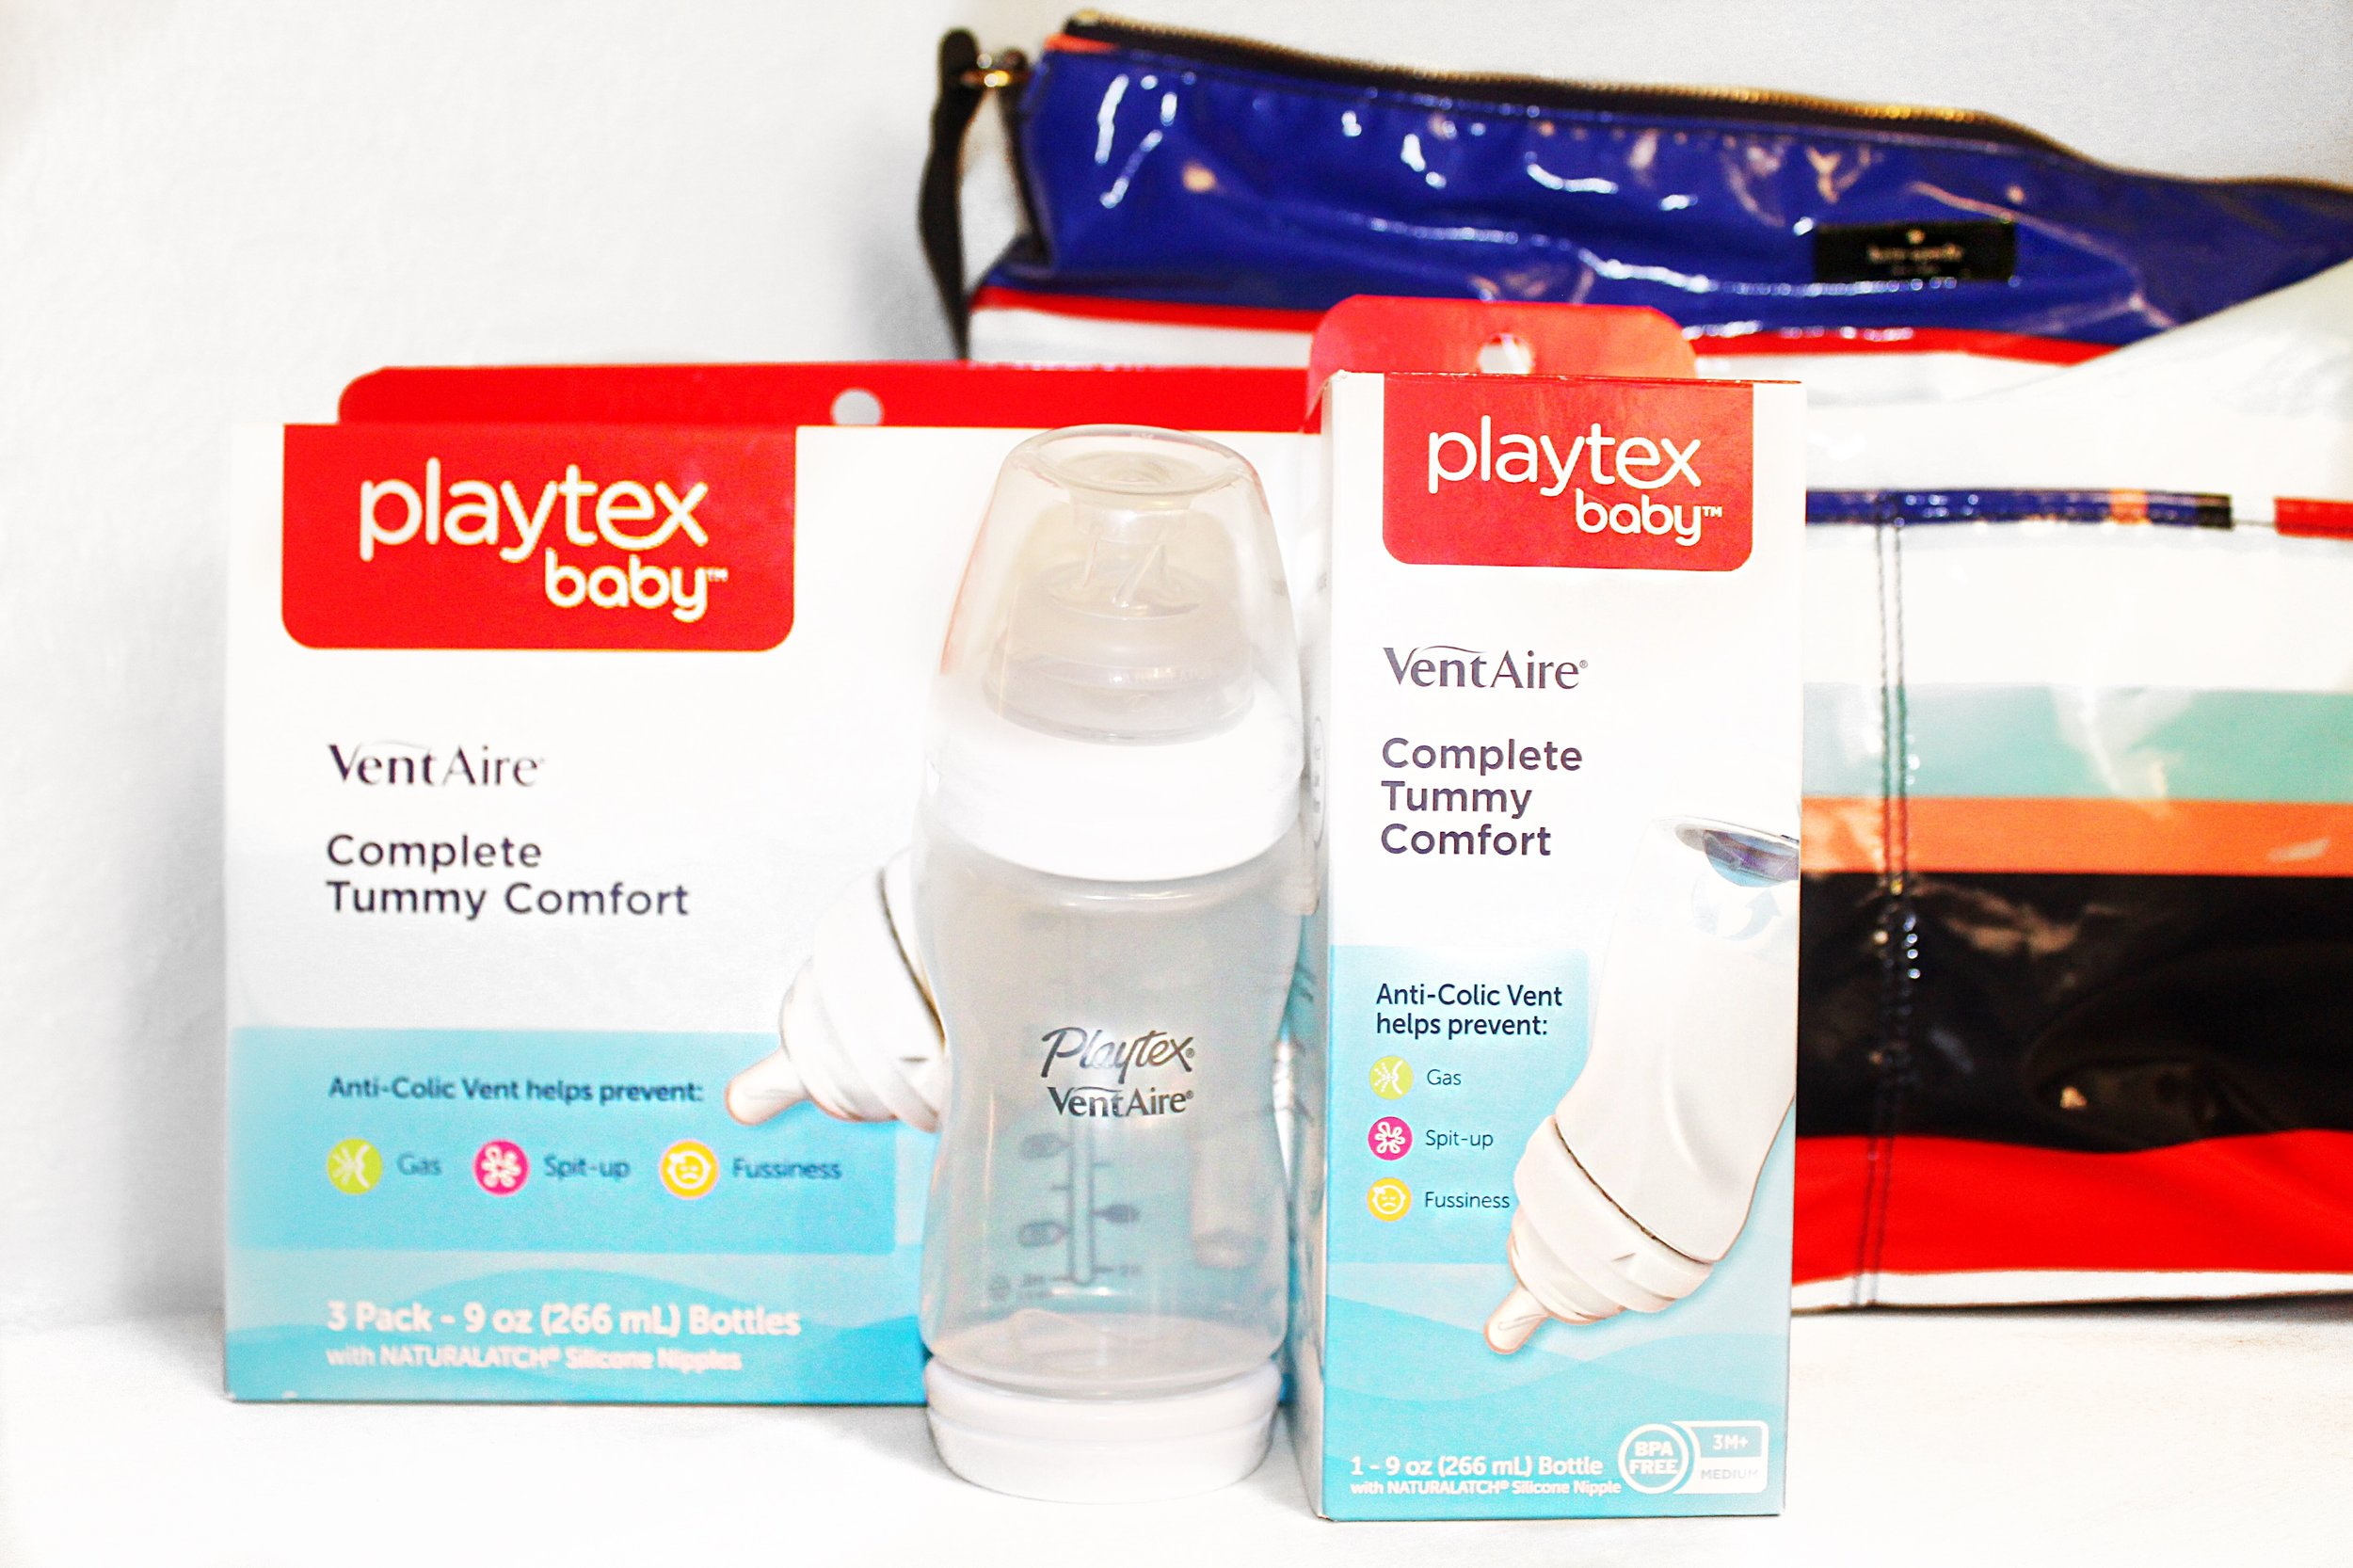 playtex-baby-bottles.JPG